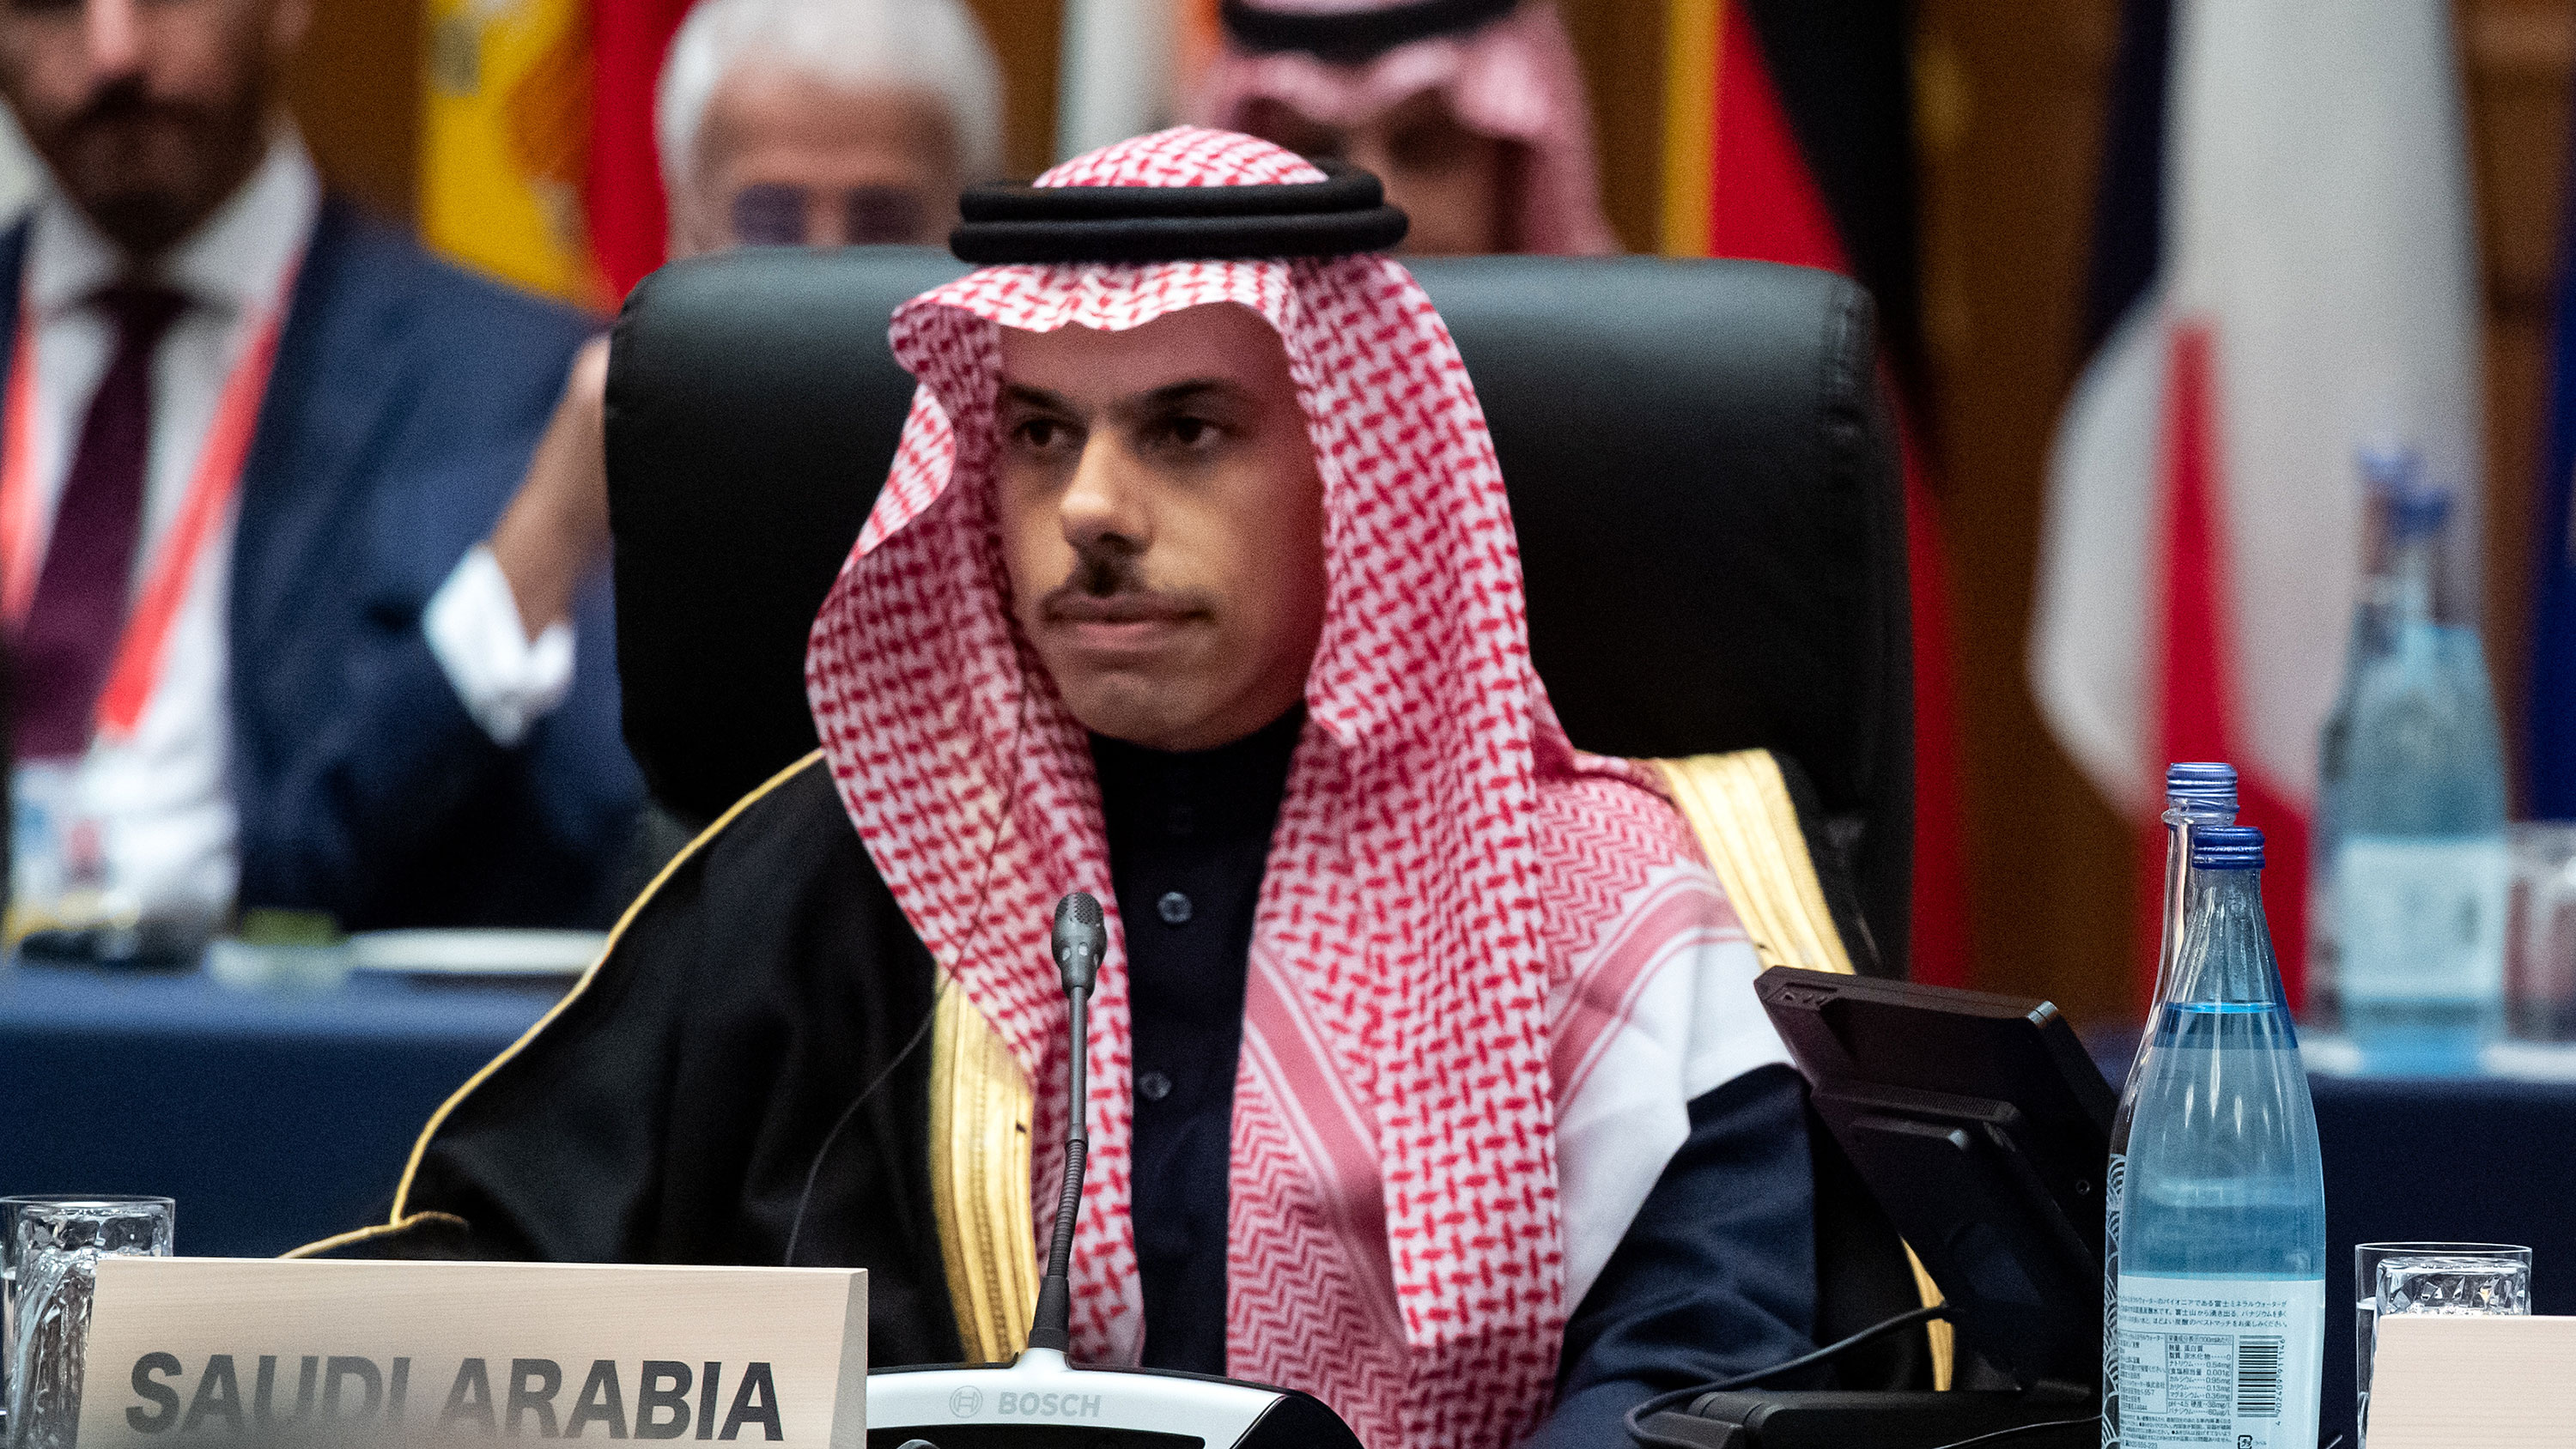 Prince Faisal bin Farhan bin Abdullah Al-Saud (l), Minister of Foreign Affairs of Saudi Arabia attends the G20 Foreign Ministers' Meeting on November 23, 2019.